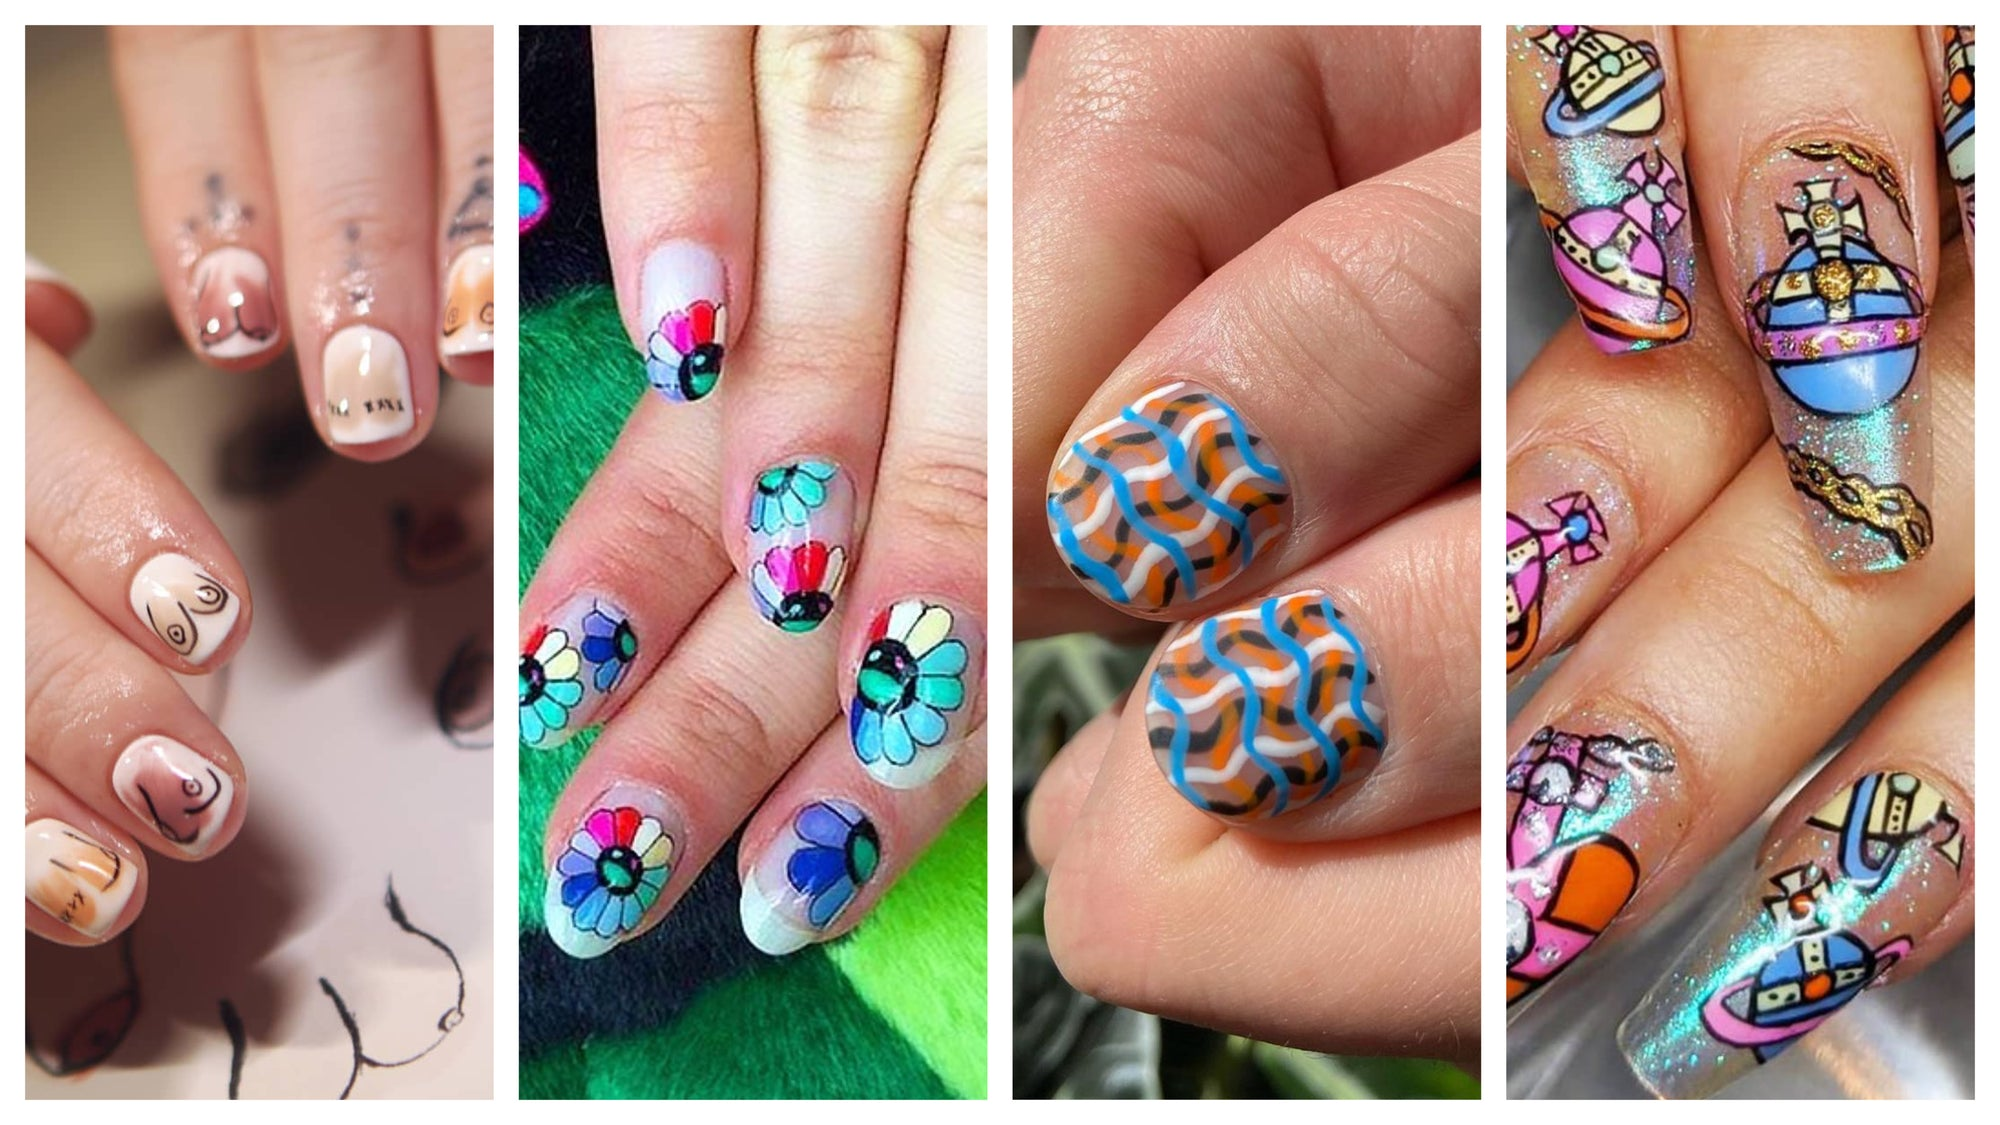 Summer Inspo: Two of our fab nail artists share their fave looks!